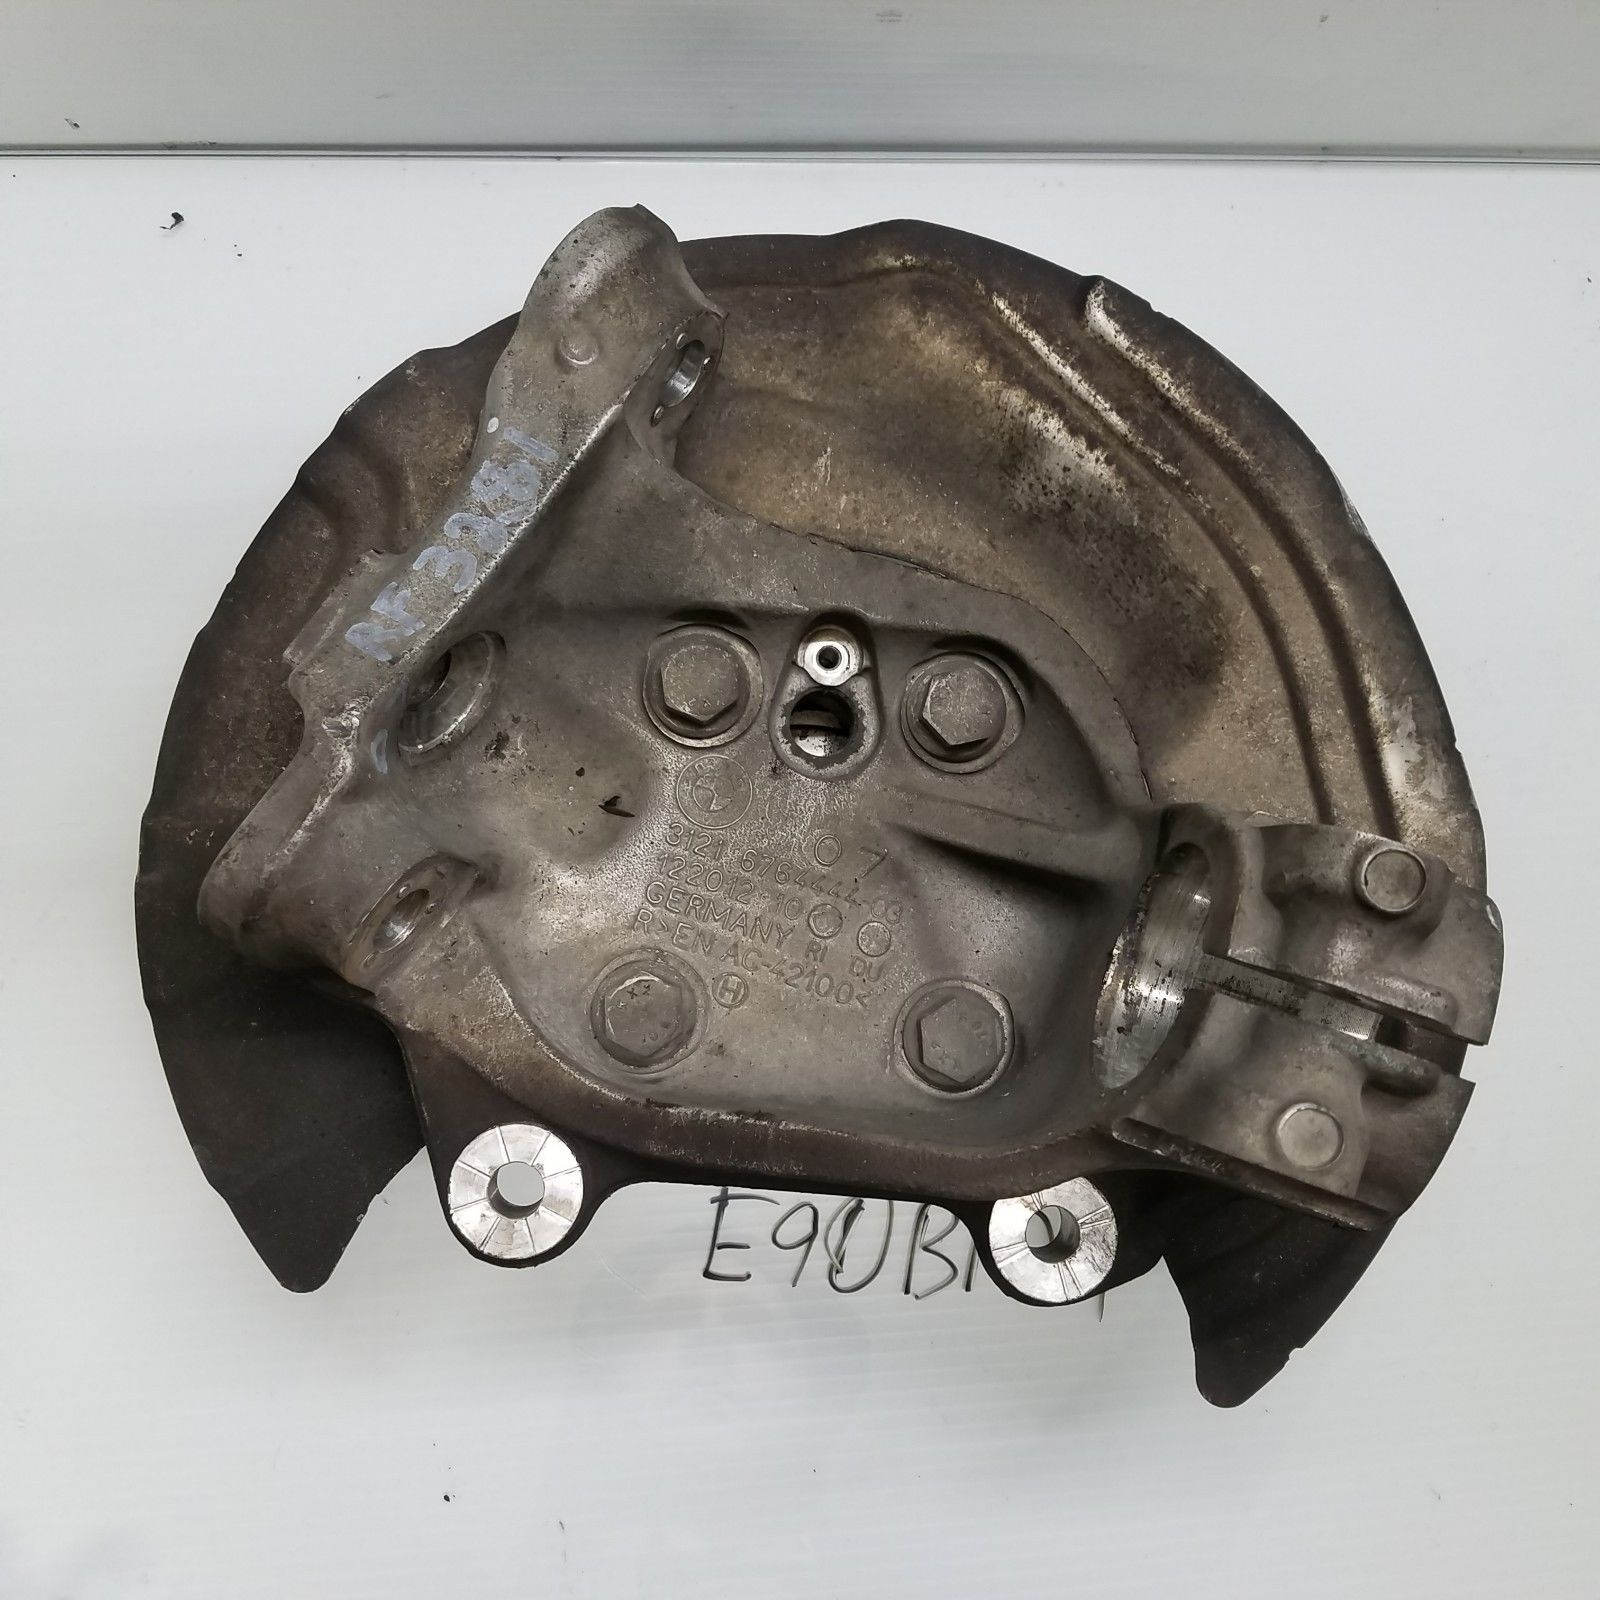 2006-2011 BMW 328i E90 FRONT RIGHT SPINDLE KNUCKLE OEM 6764444 Does not apply E90BM9